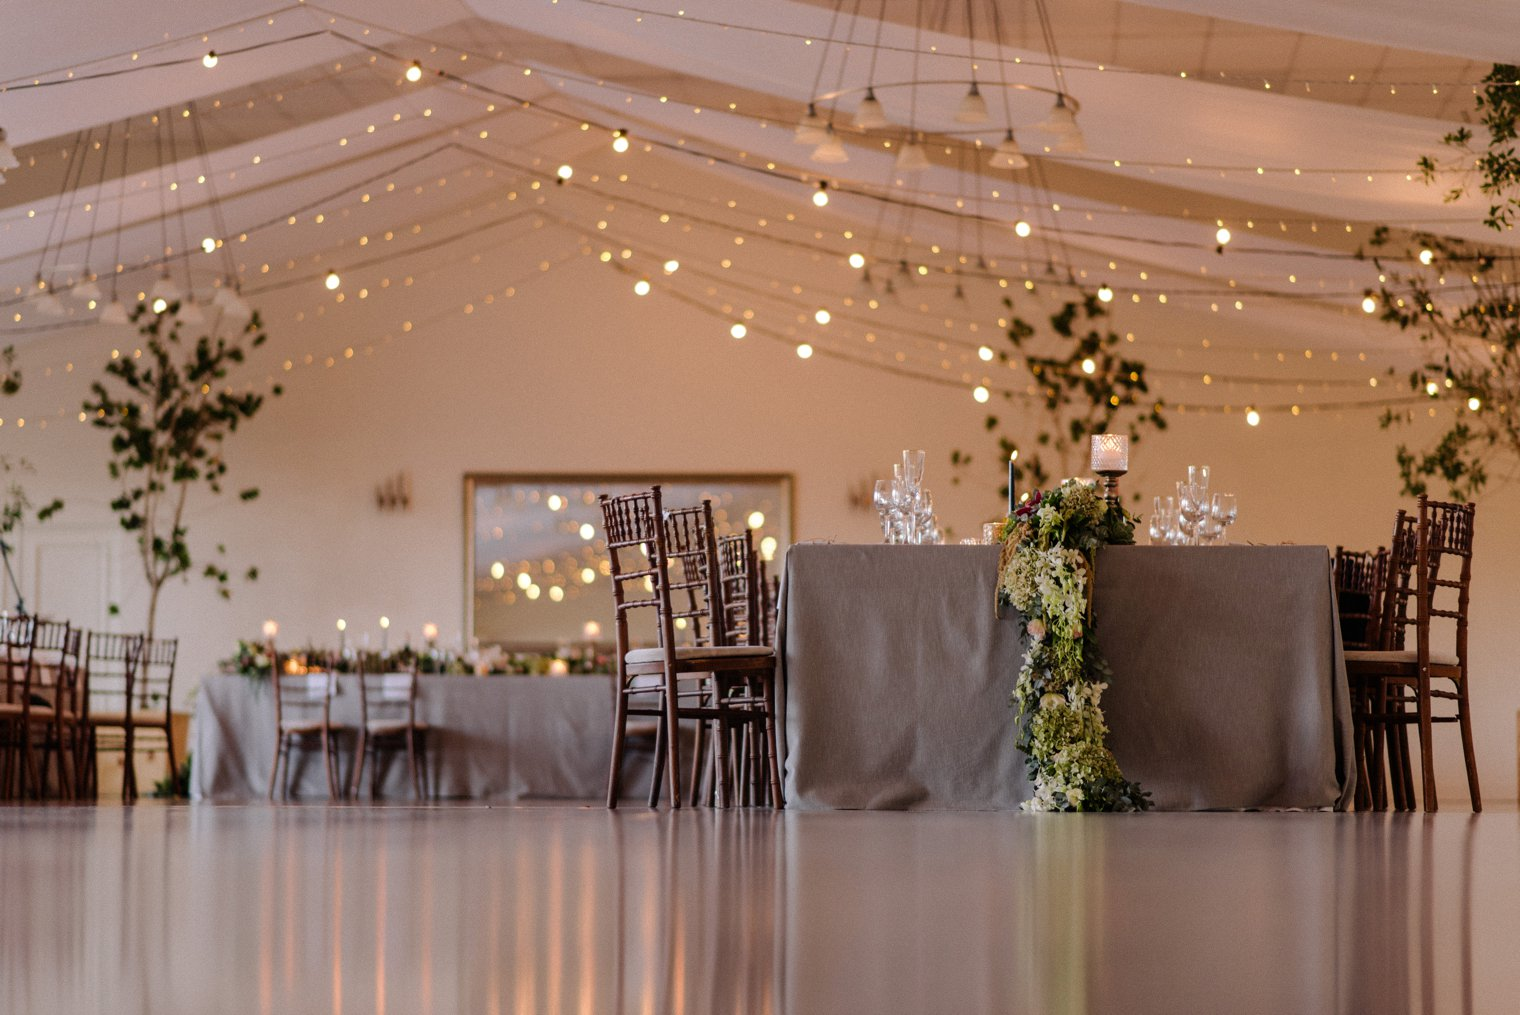 kronenburg wedding venue in stellenbosch